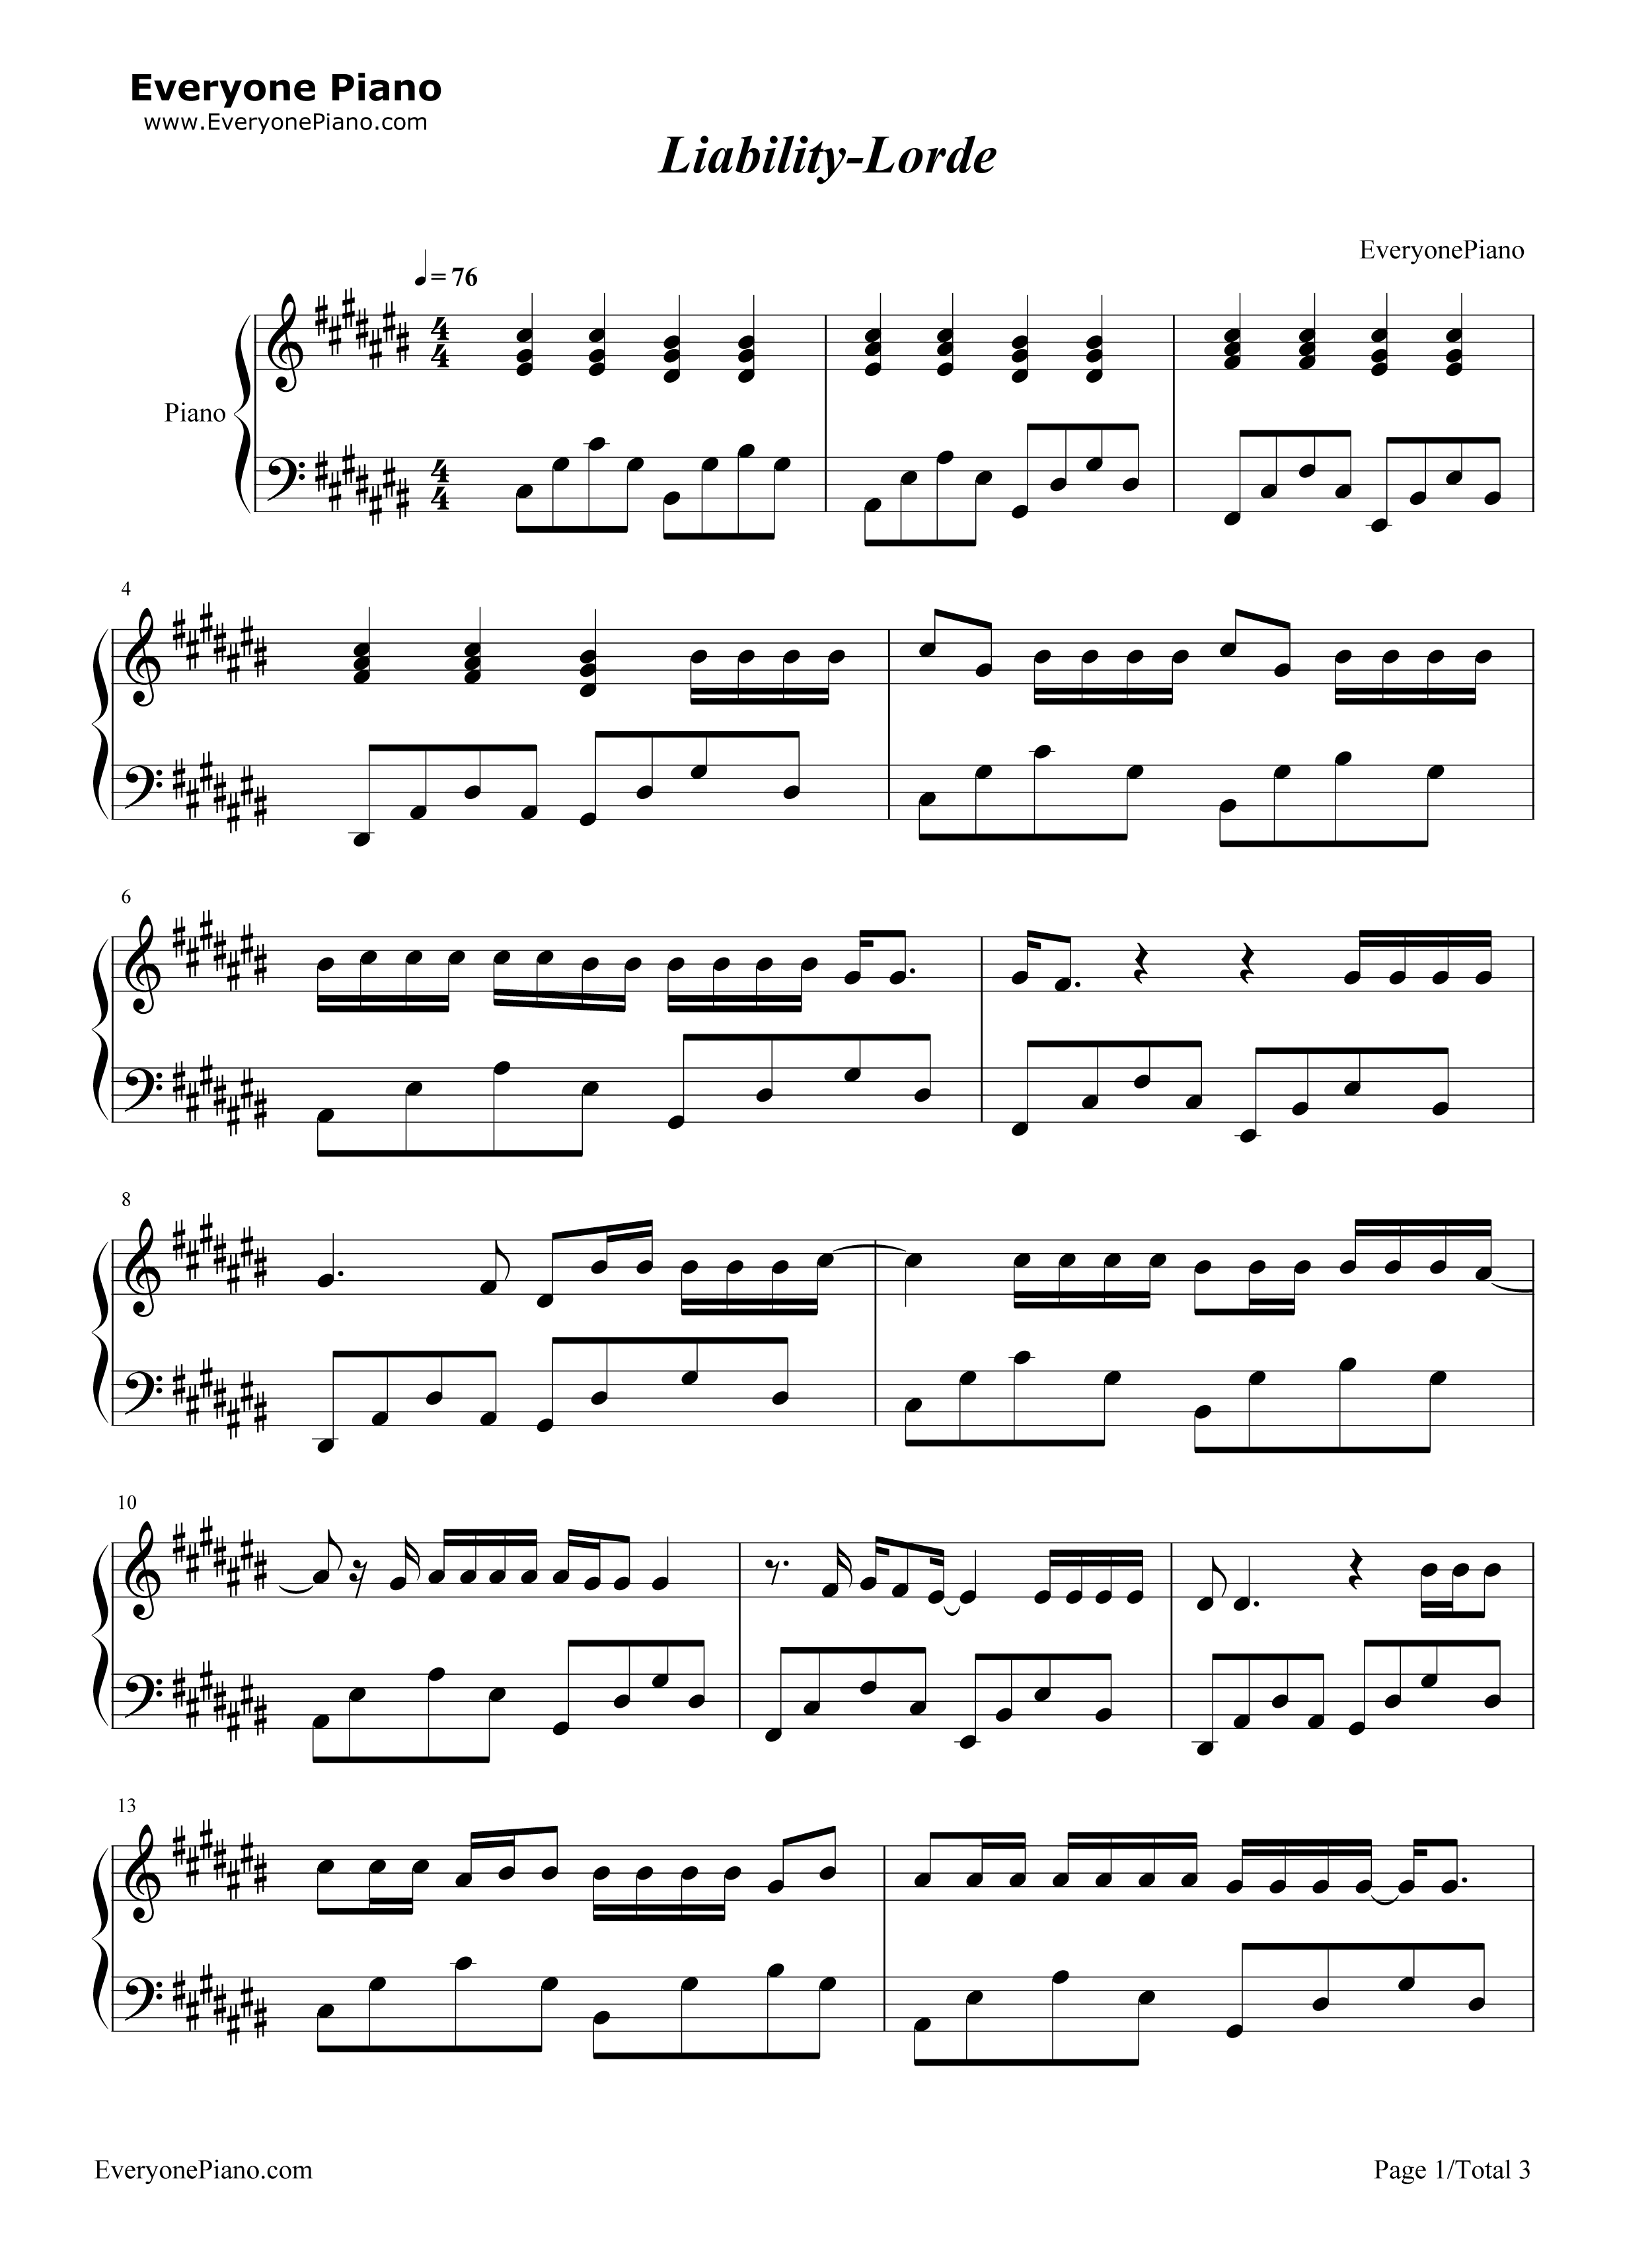 Liability lorde stave preview 1 free piano sheet music piano chords listen now print sheet liability lorde stave preview 1 hexwebz Gallery